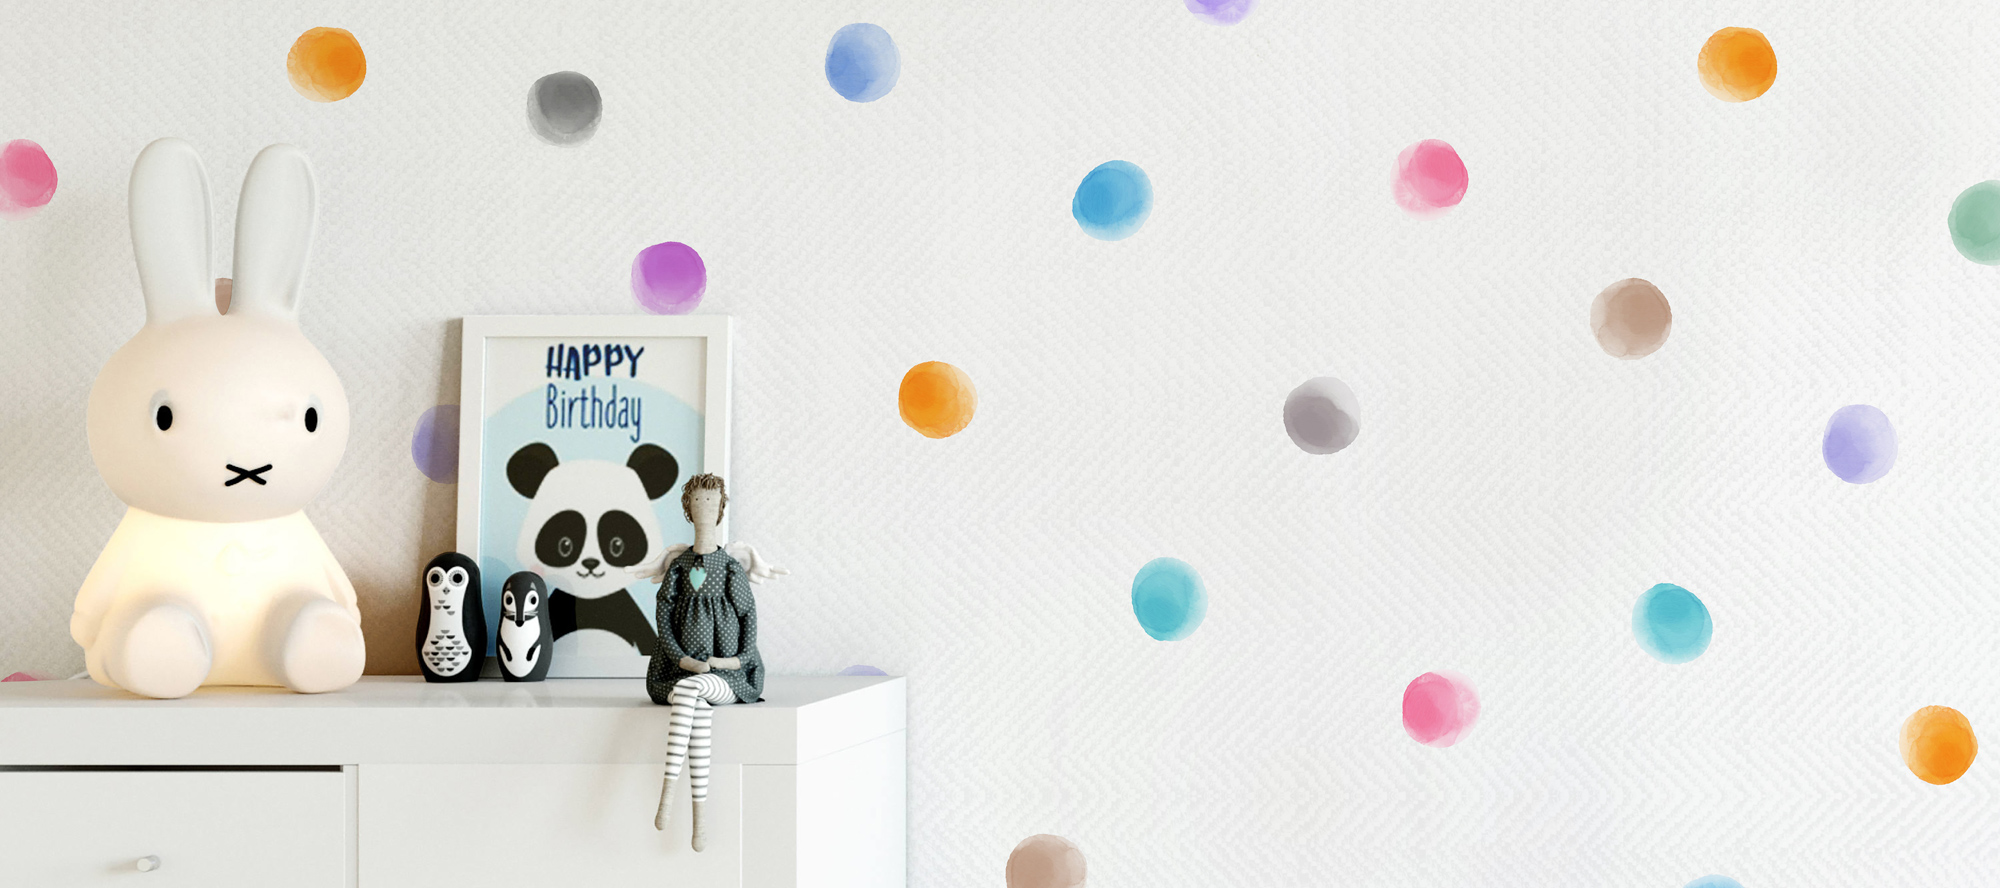 D'infinity, KidsZone Latest Laminate Designs For Children Bedroom-Sundek International